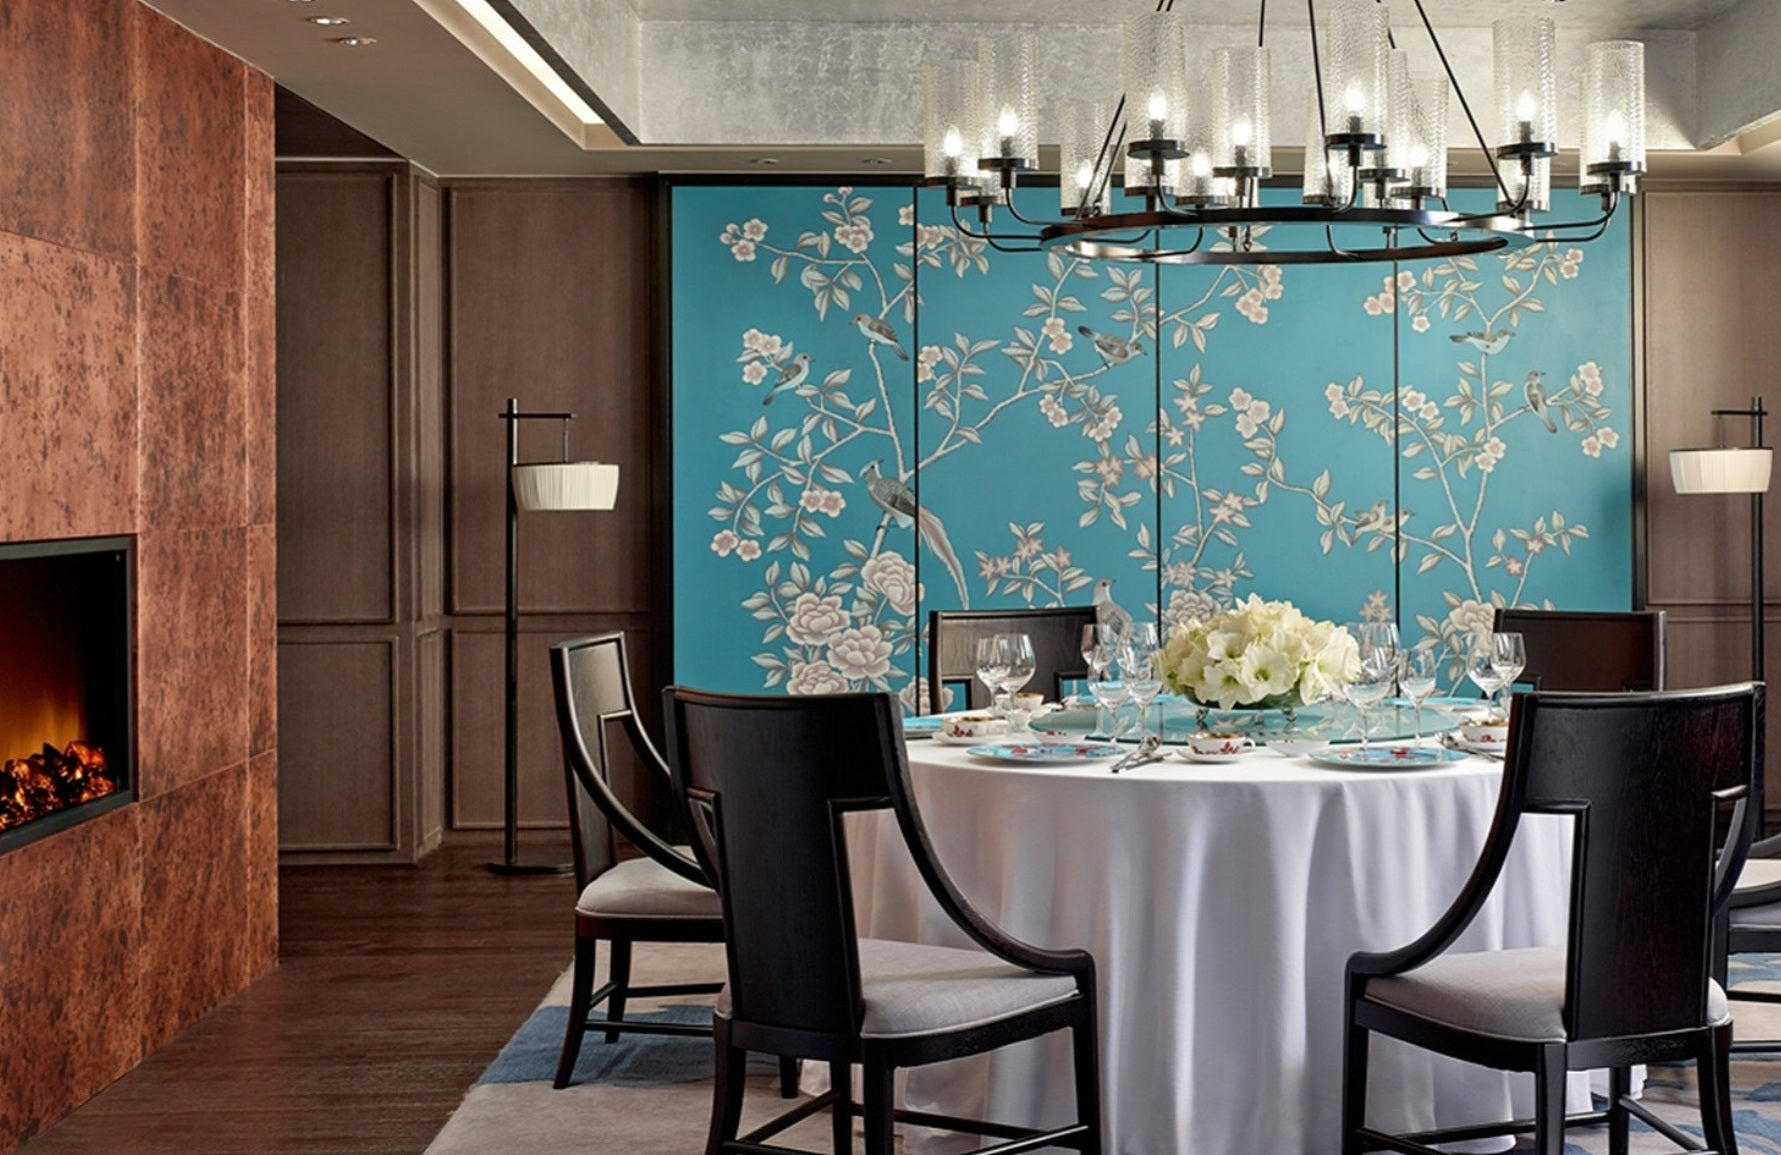 Chinese Interior Design _ The Langham _ Read more in the LuxDeco.com Style Guide